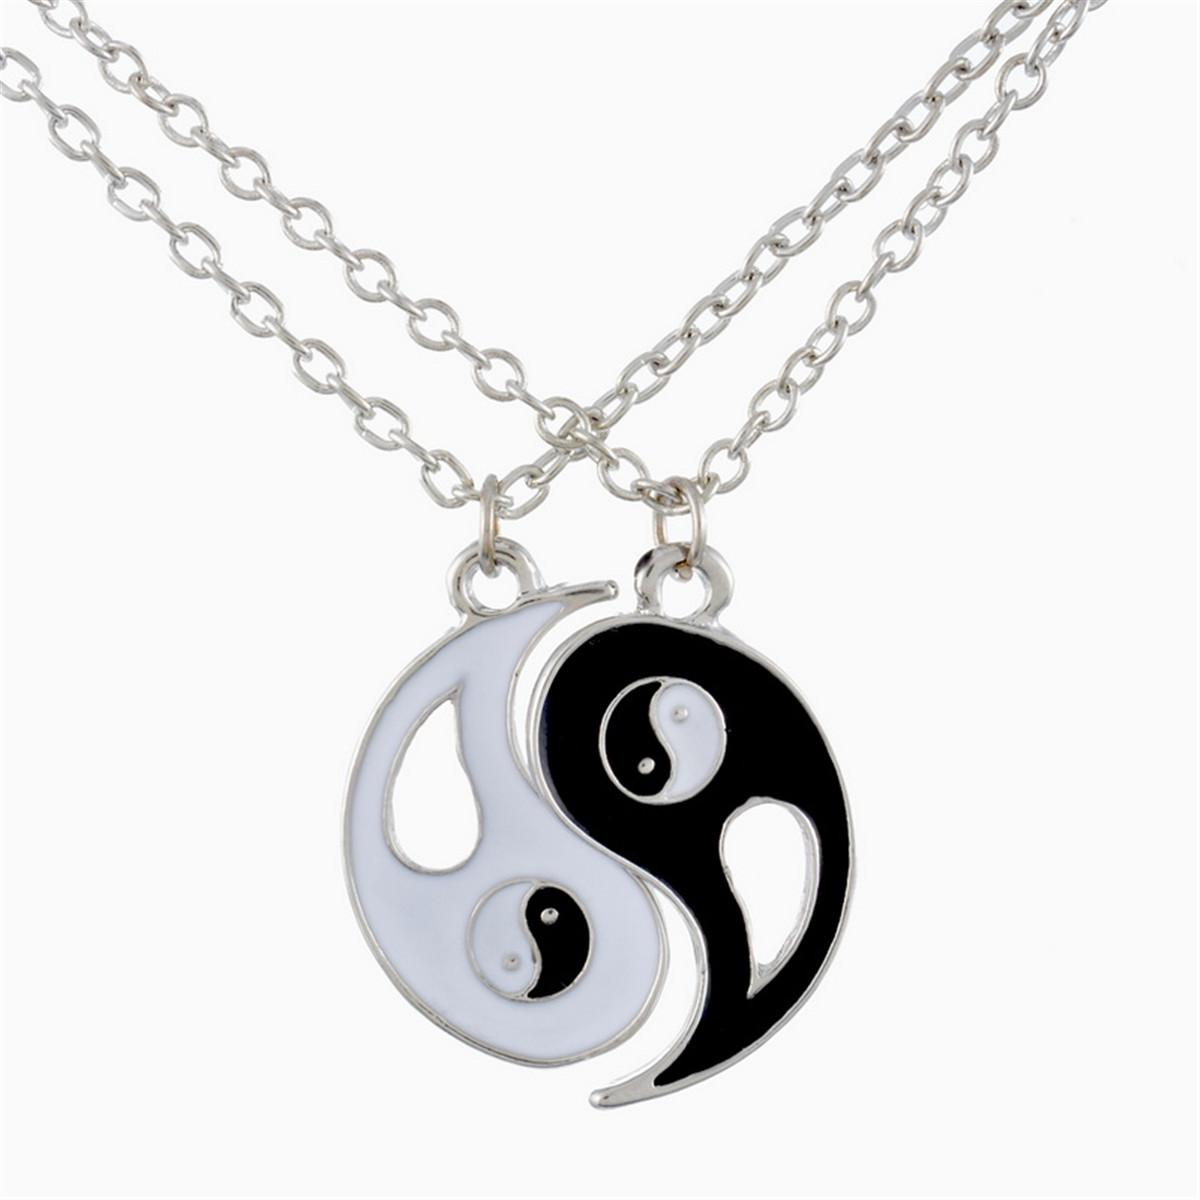 Lily Best Friends Ying Yang Two Bagua Charm Pendant Necklaces Retro Stylish with a Gift Bag